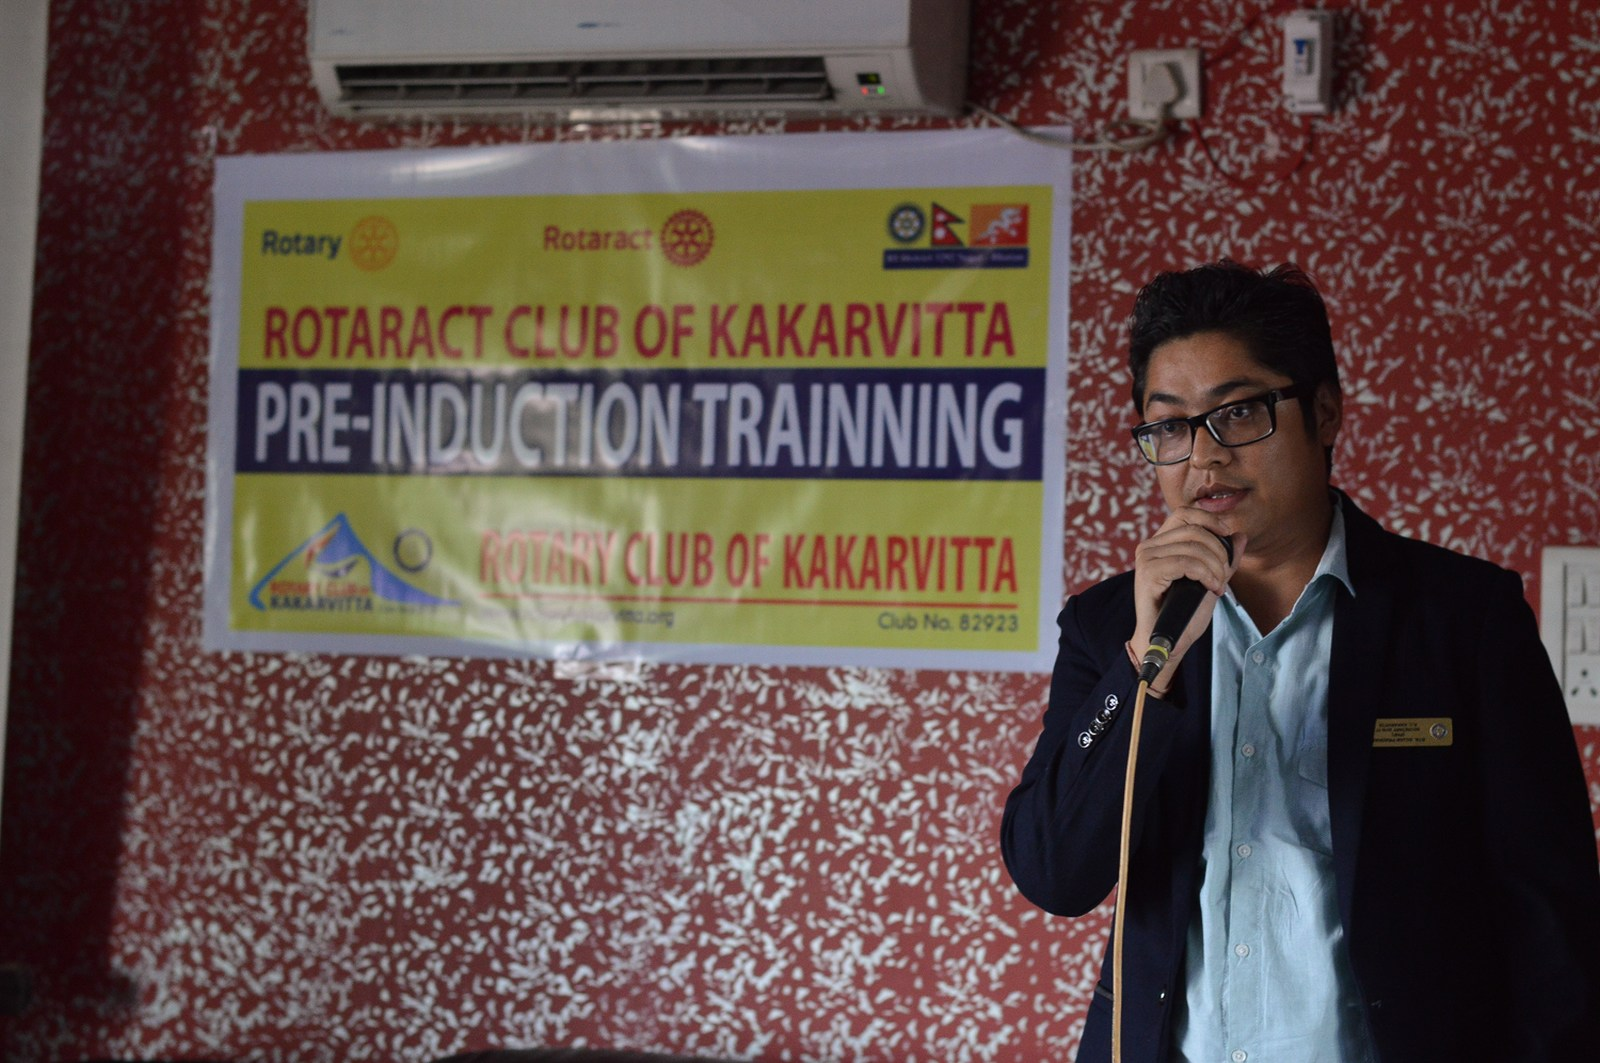 Pre-Induction-Training-of-Rotaract-Club-of-Kakarvitta-Rotary-Club-of-Kakarvitta-30